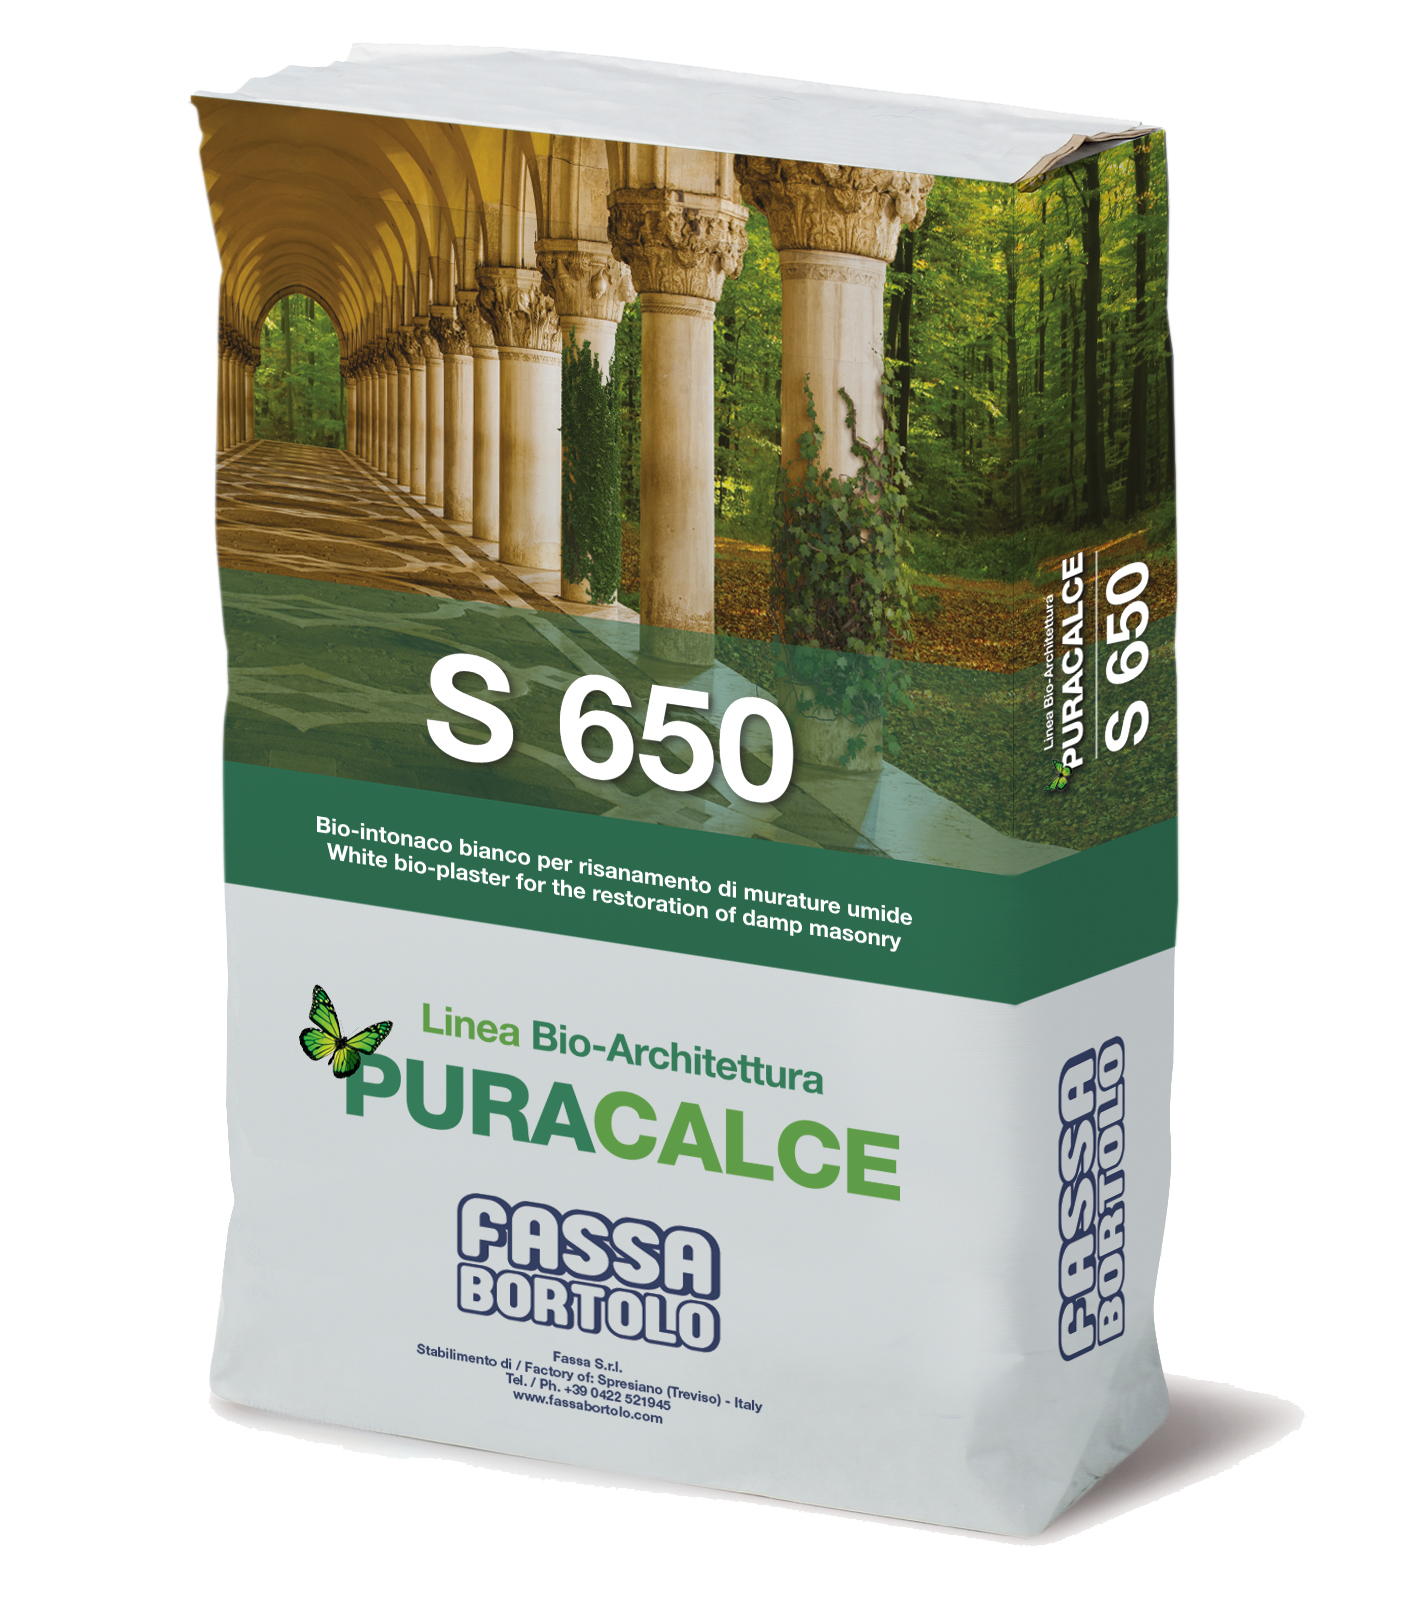 S 650: Bio white undercoat for the restoration of damp masonry, for interiors and exteriors